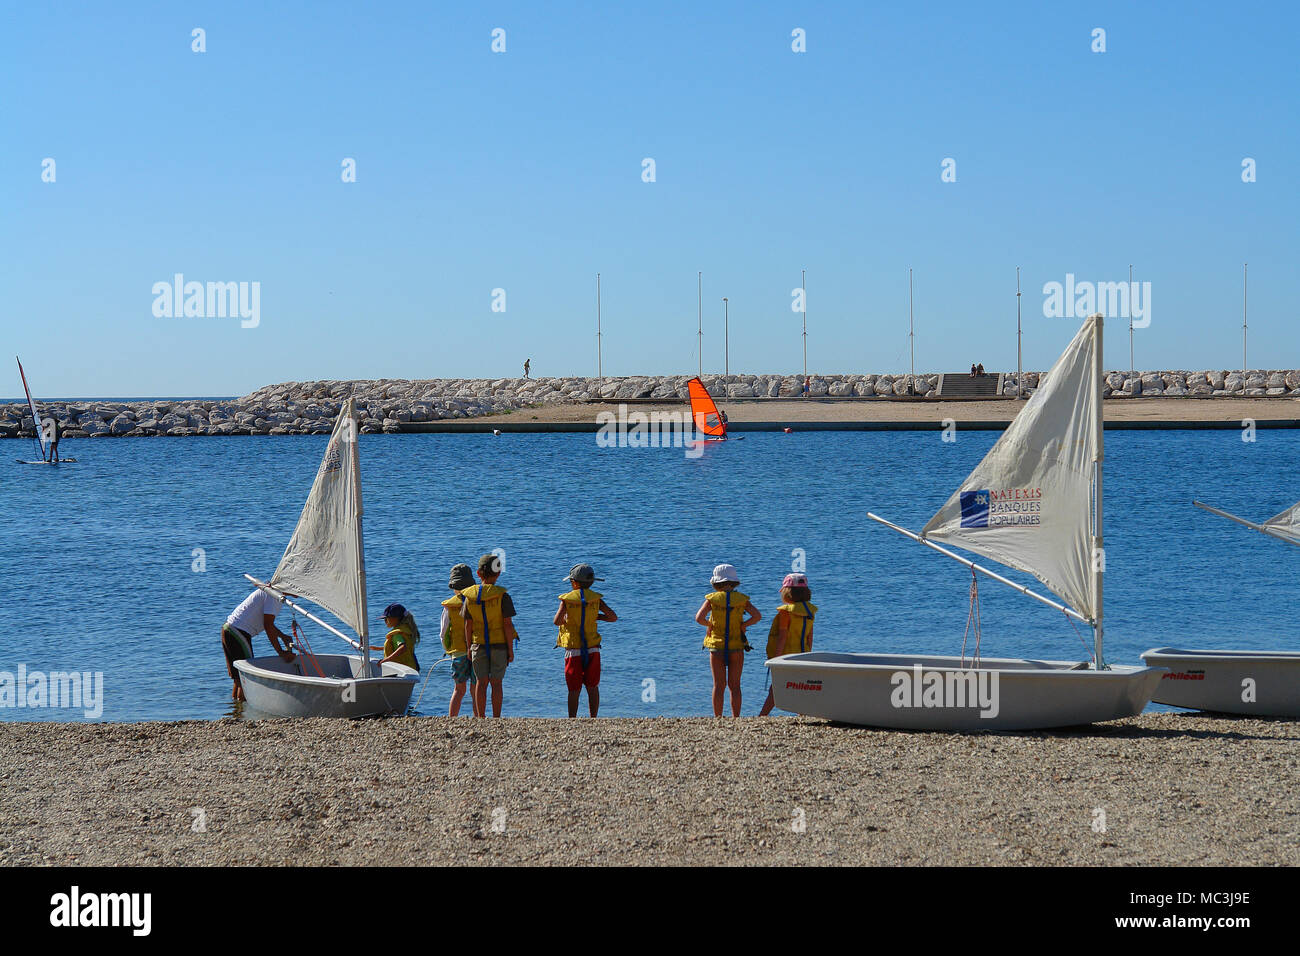 Sailing school for childs - Stock Image